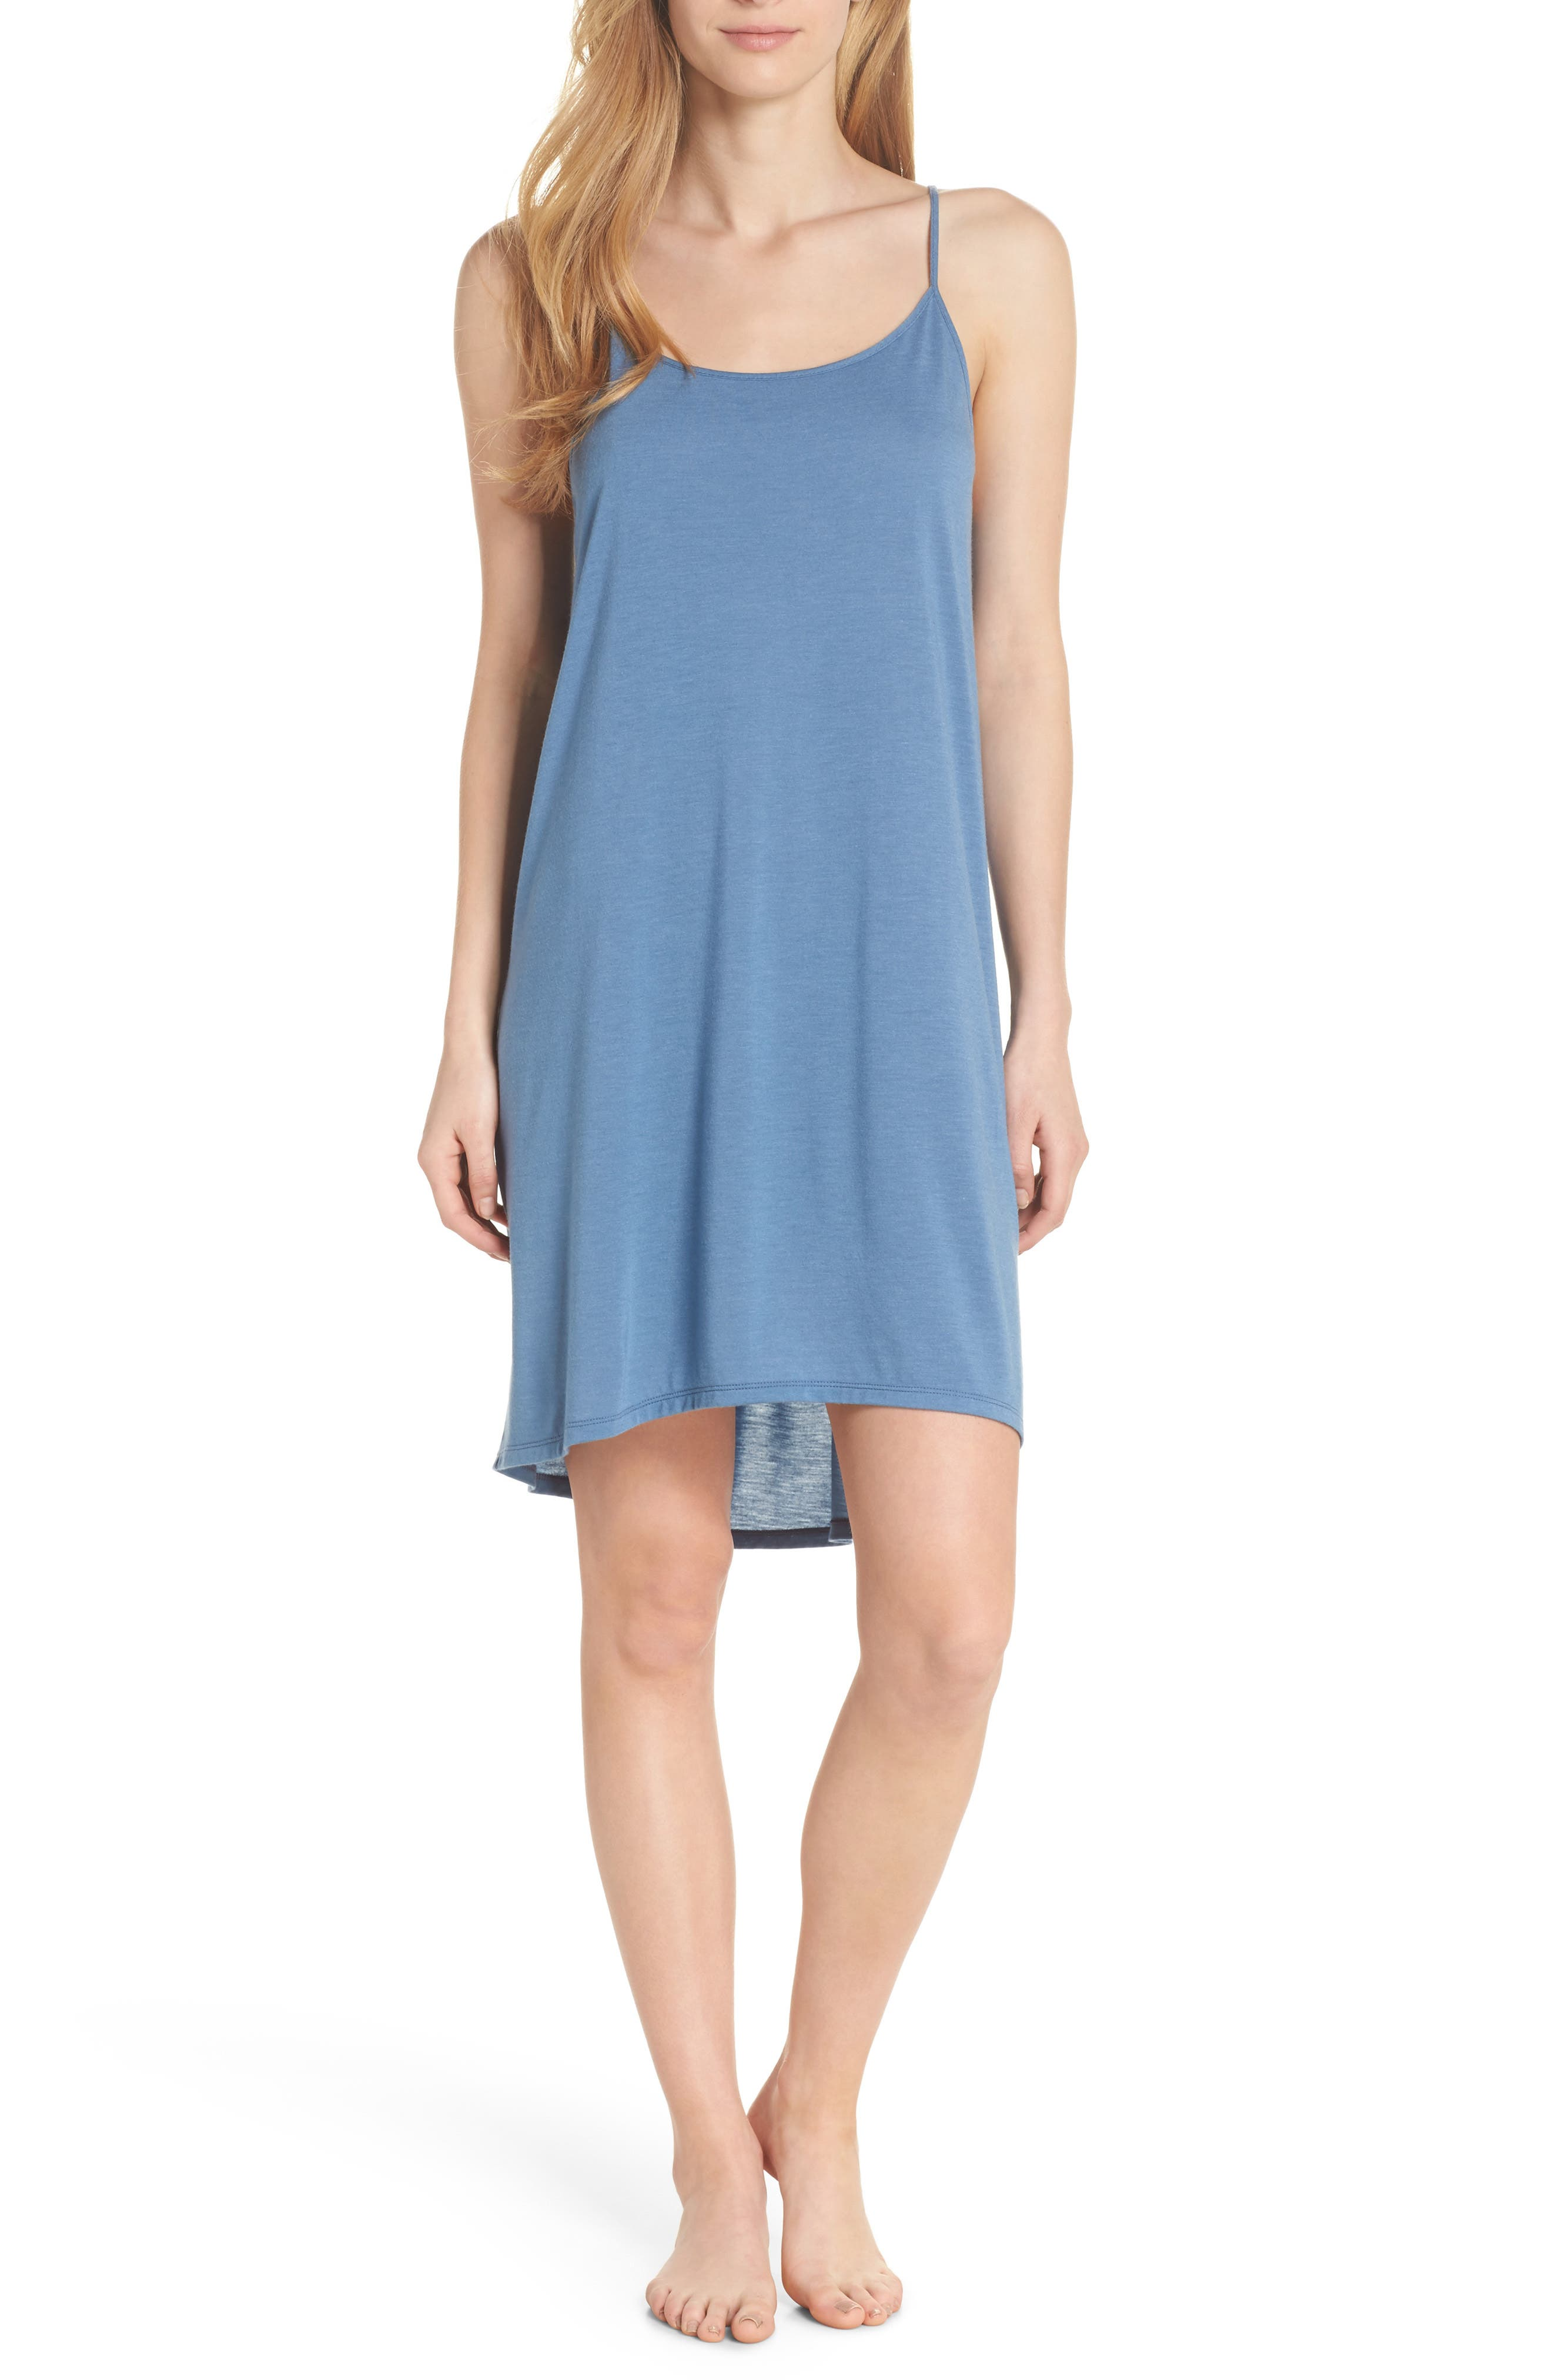 Heather Tees Chemise,                         Main,                         color, Bsq Ht Blue Shadow